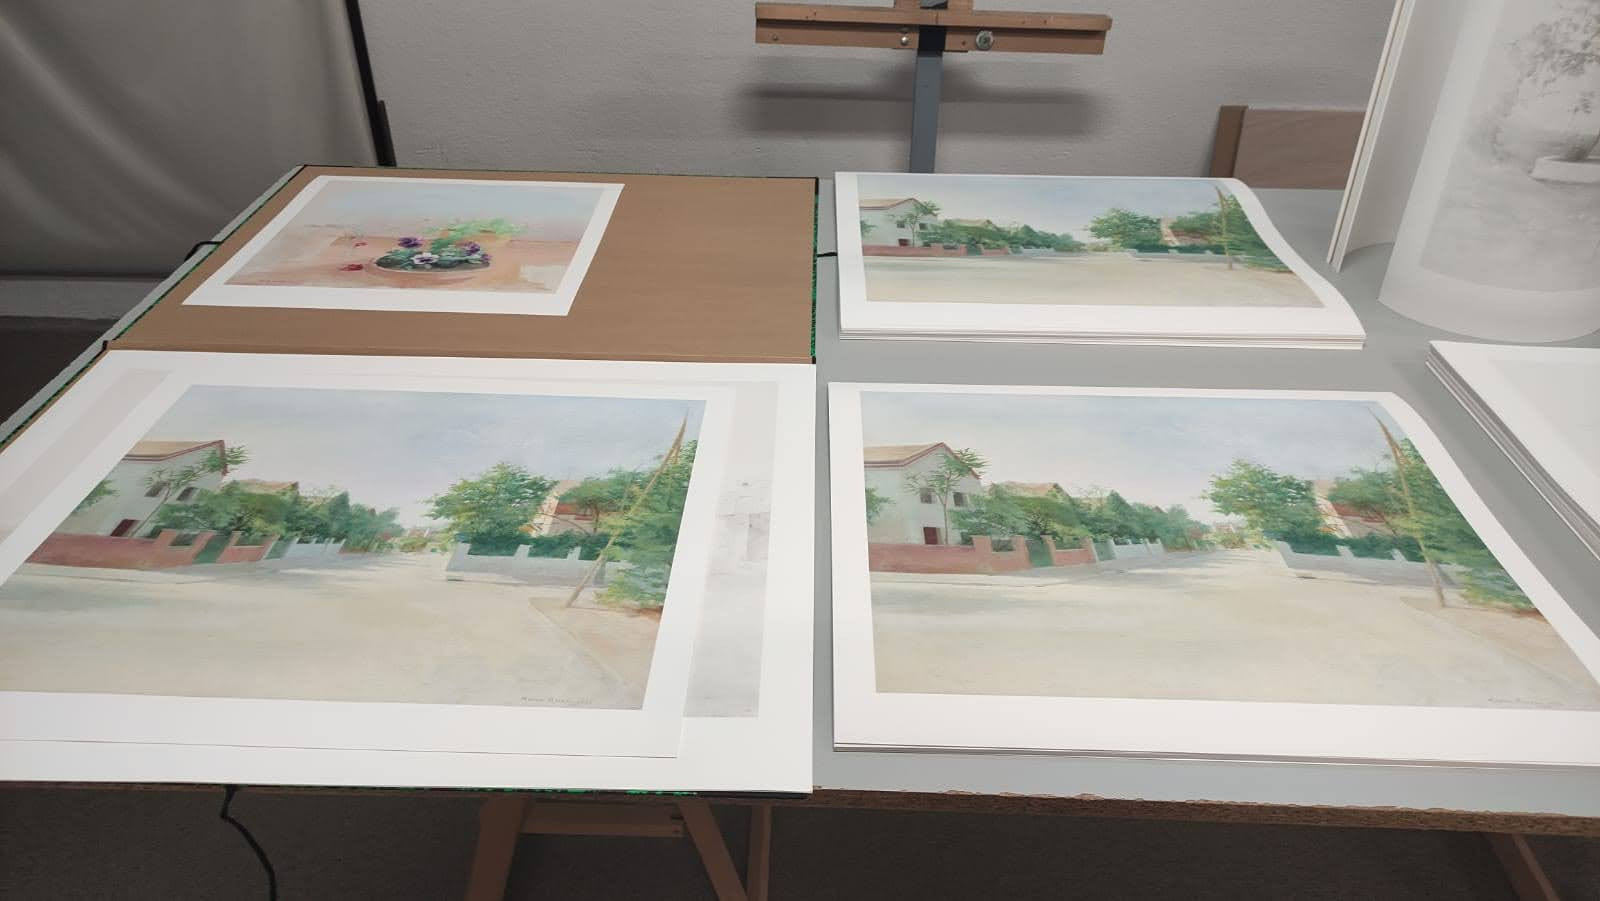 Some prints of works of María Moreno in the UM workshop